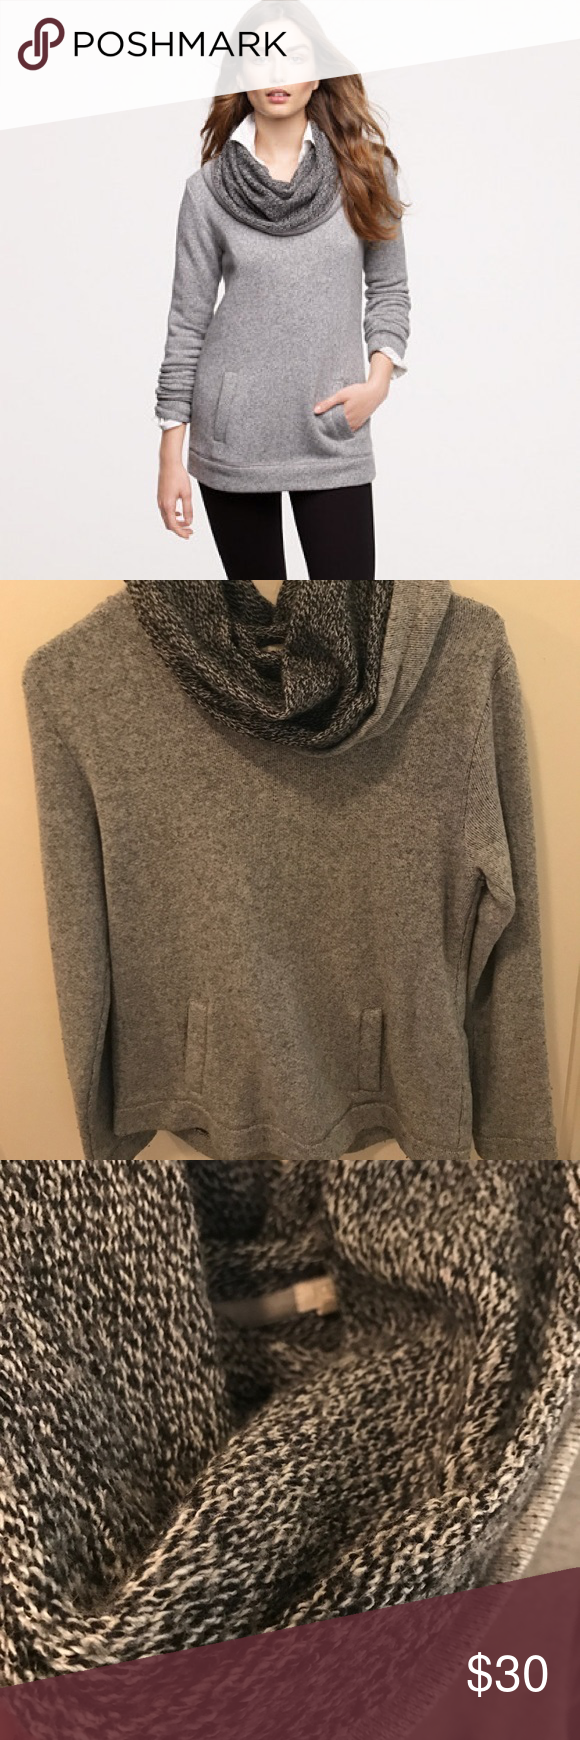 J Crew Cowl neck Sweater | Cowl neck and Conditioning